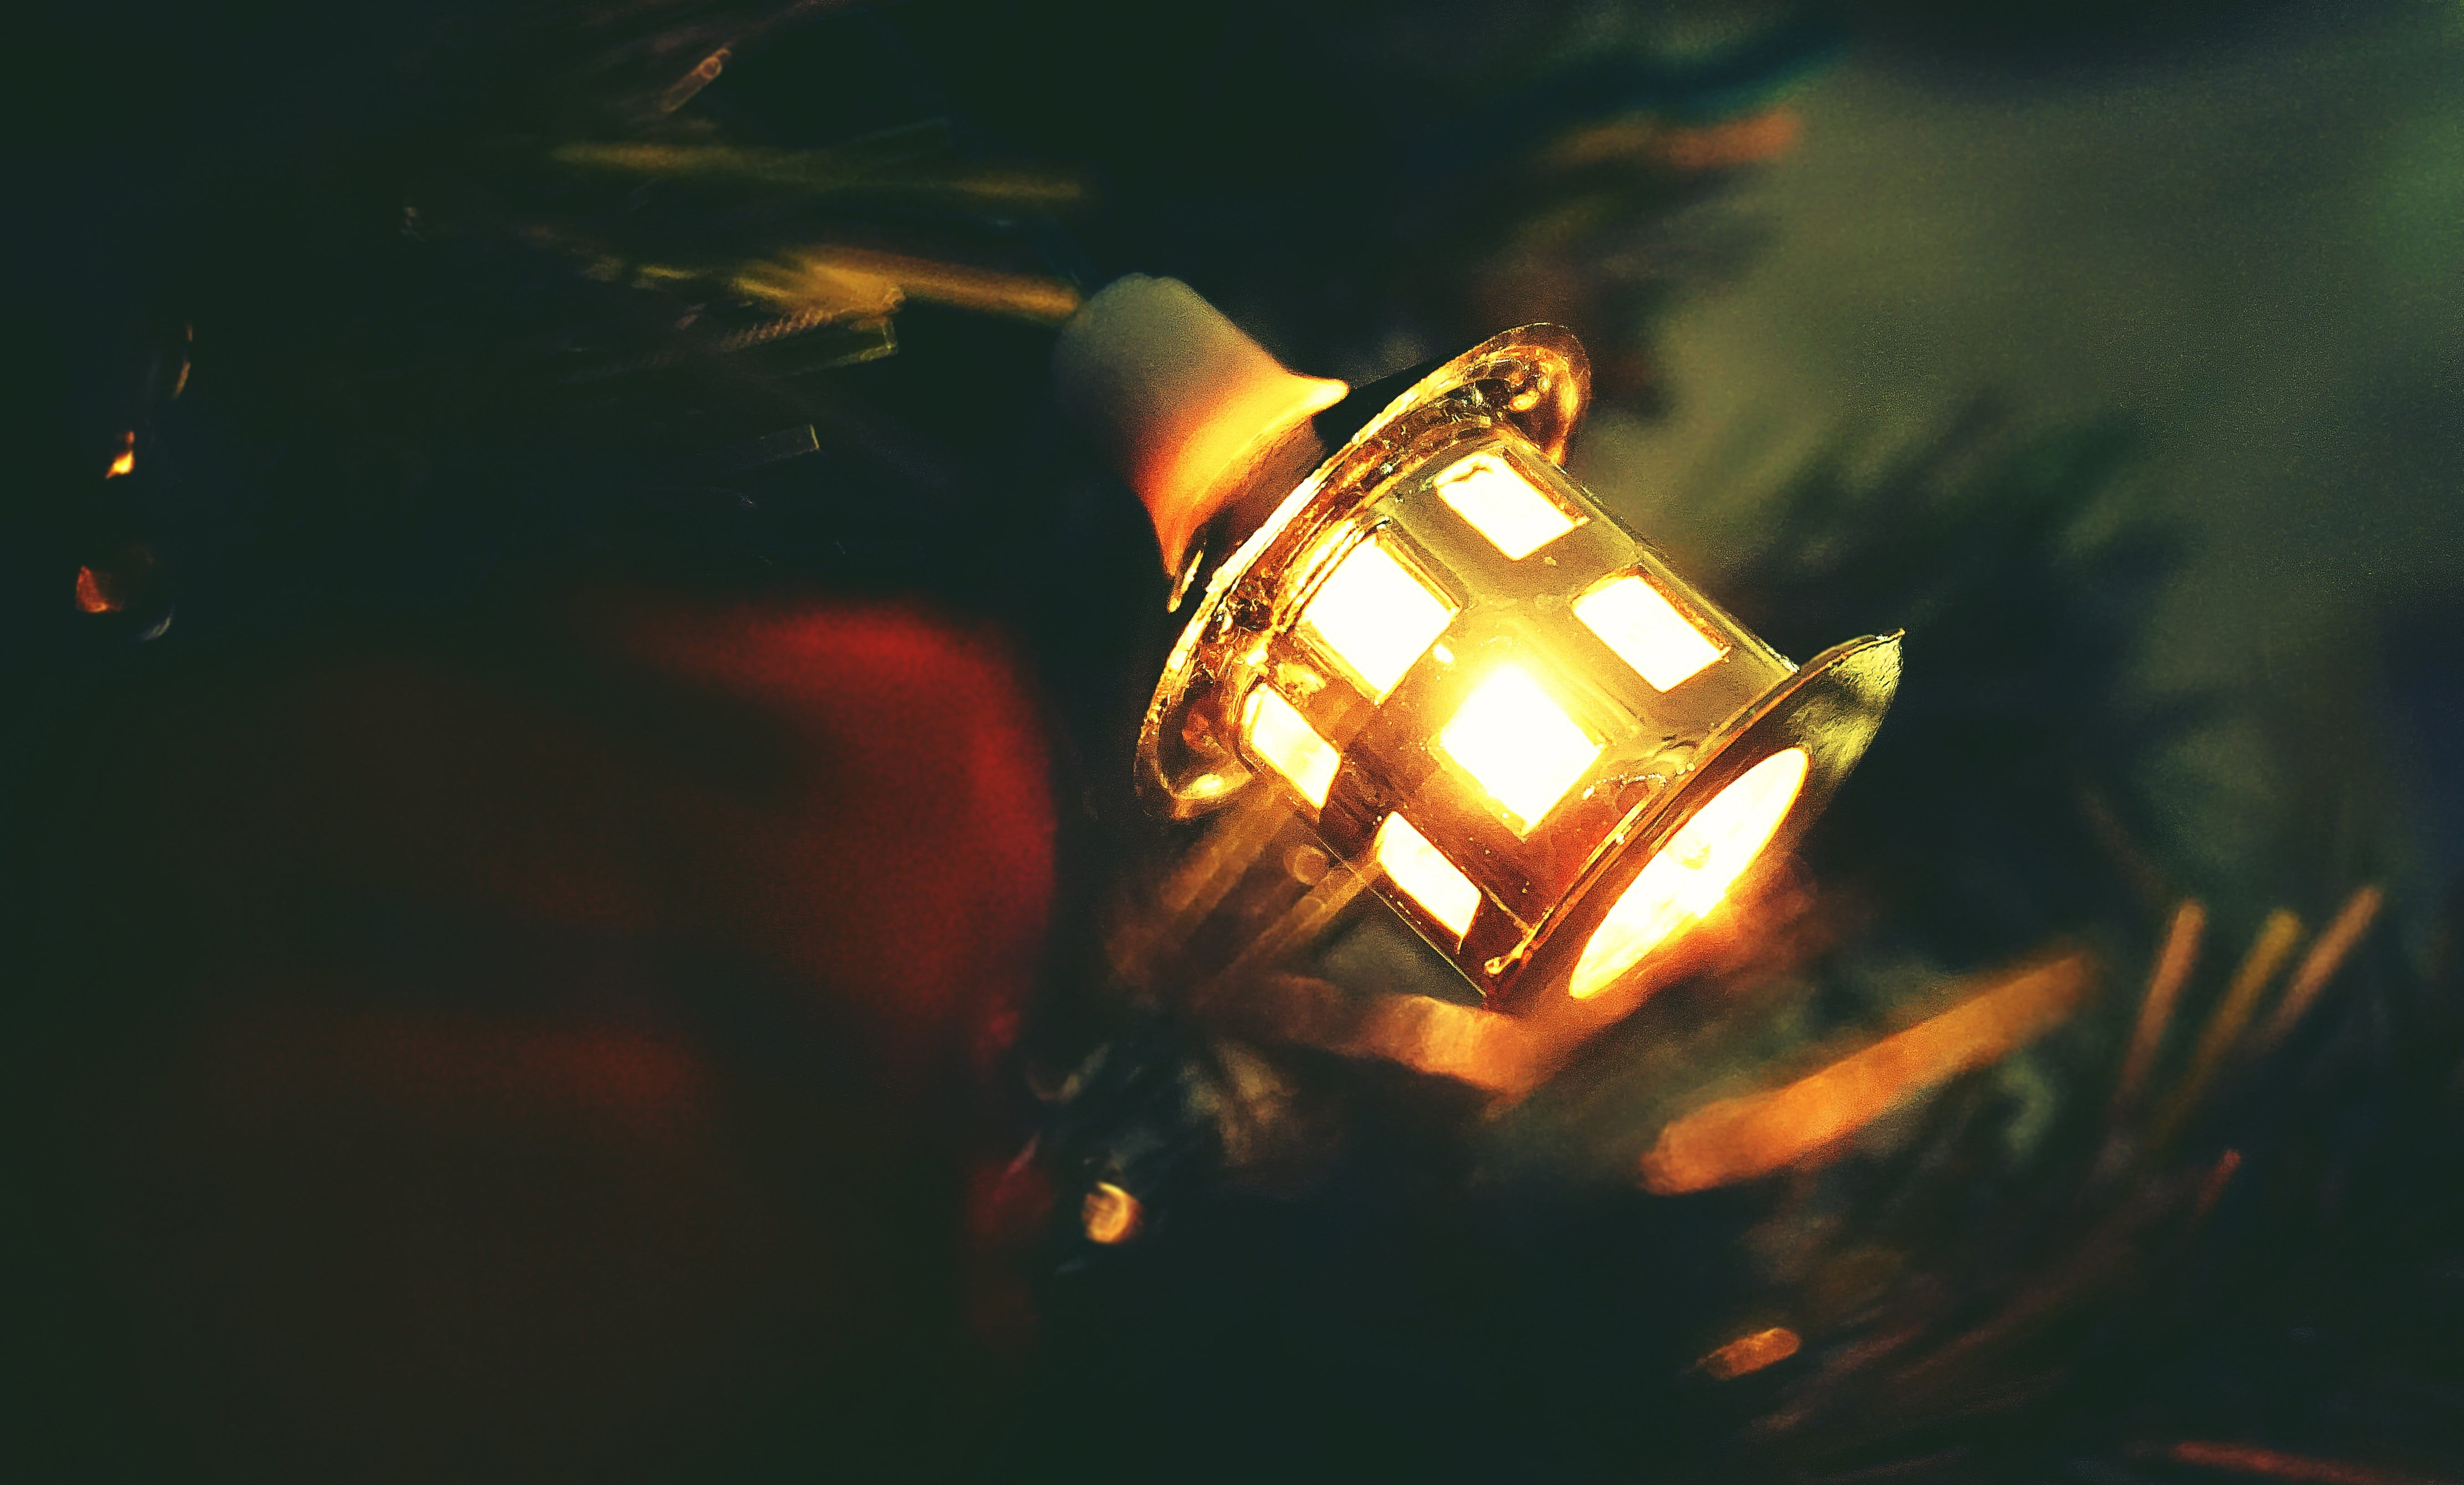 Free stock photo of lights, festive, vintage, close-up view